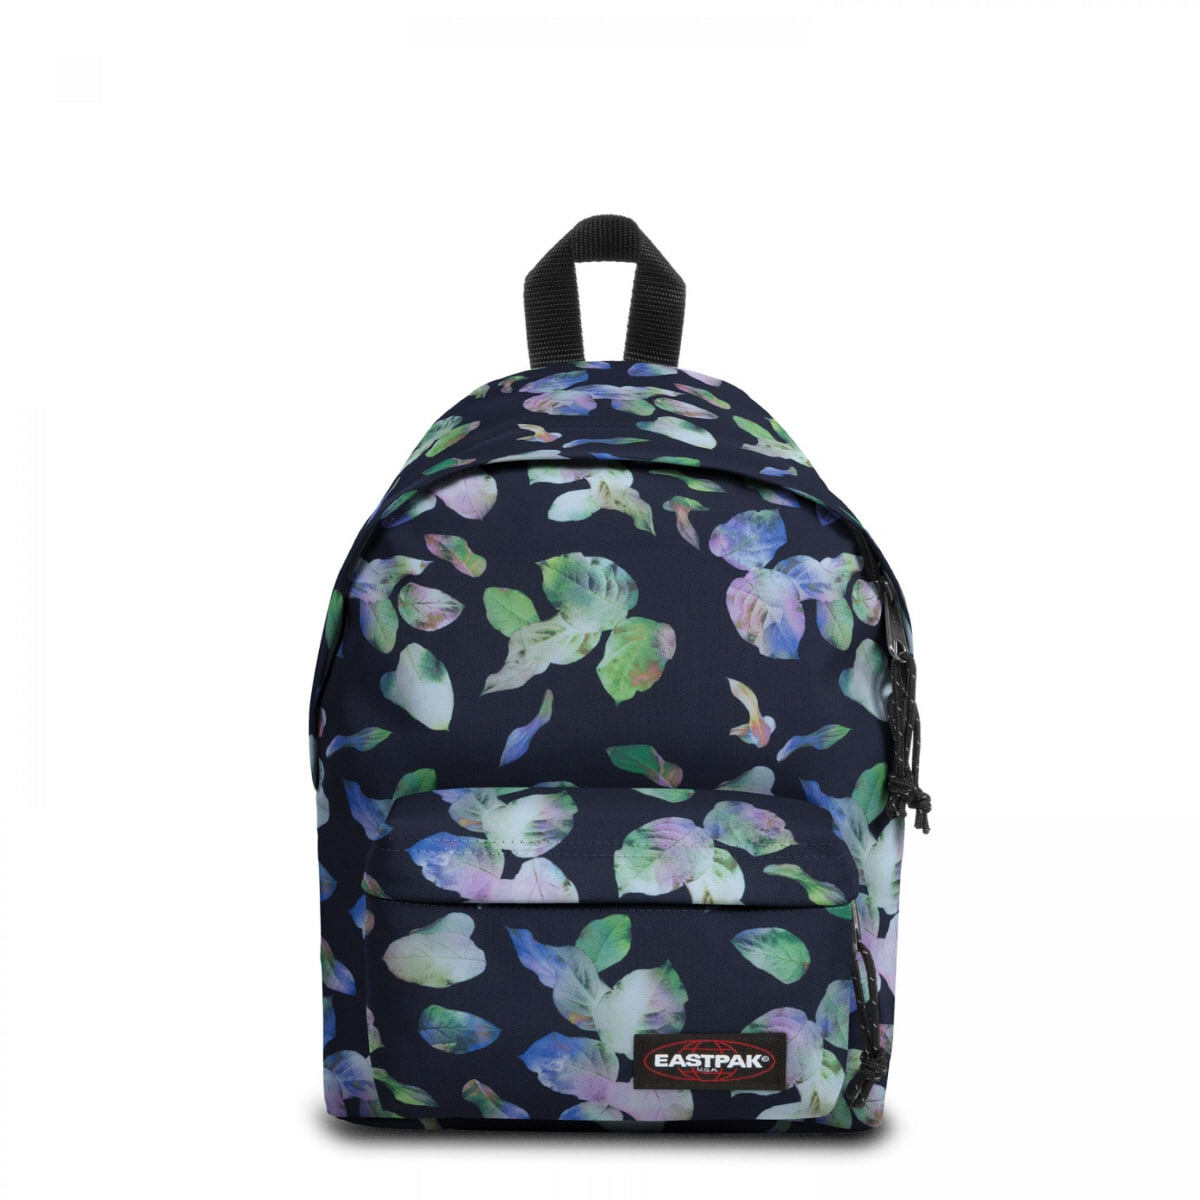 [EASTPAK] AUTHENTIC 백팩 패디드 파커 EJCBA12 78Y